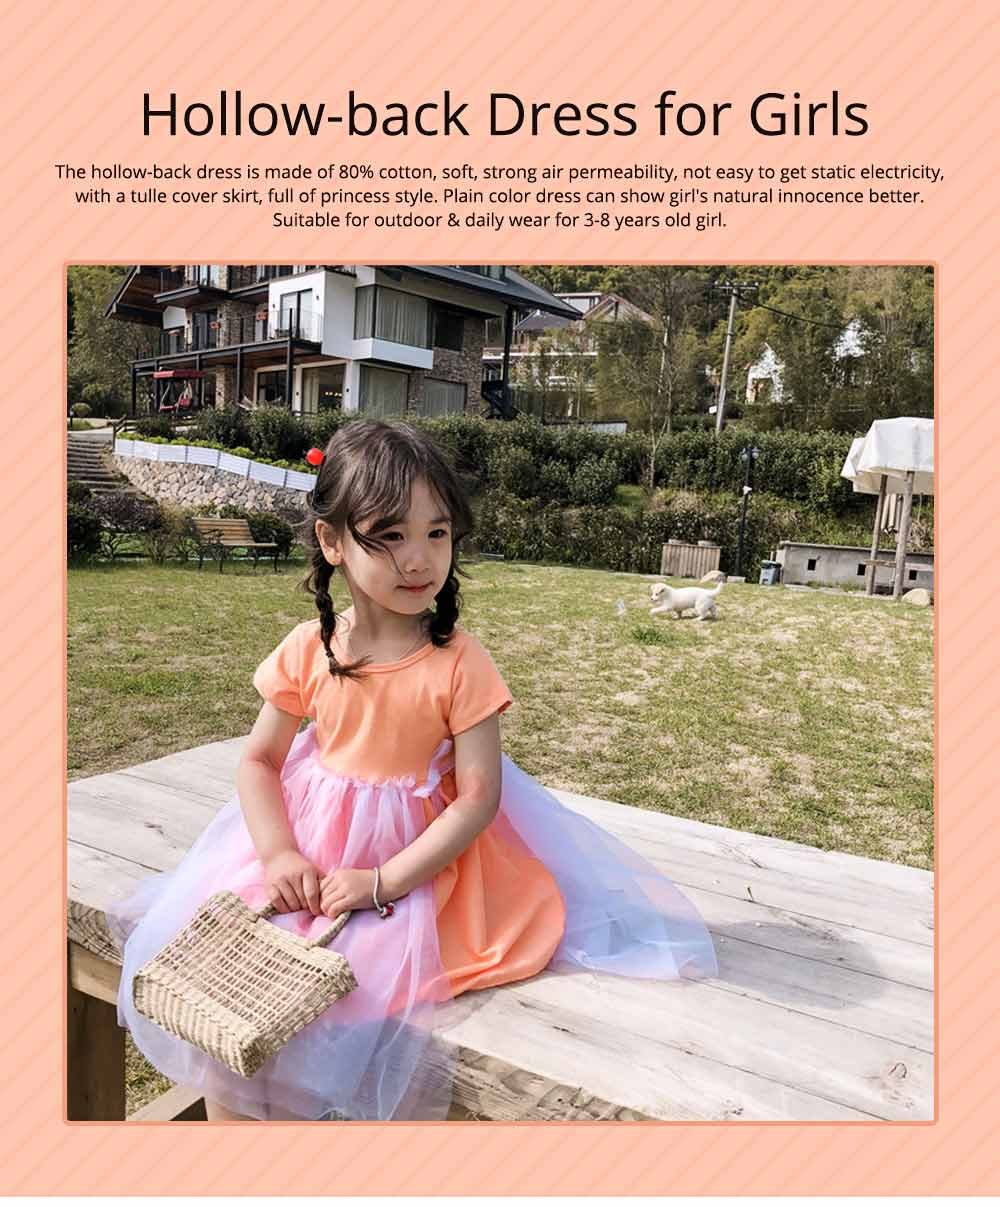 Hollow-back Dress for Girls, Tulle Skirt Patchwork Dress, Short Sleeves Dress for 3- 8 Years Girl 0